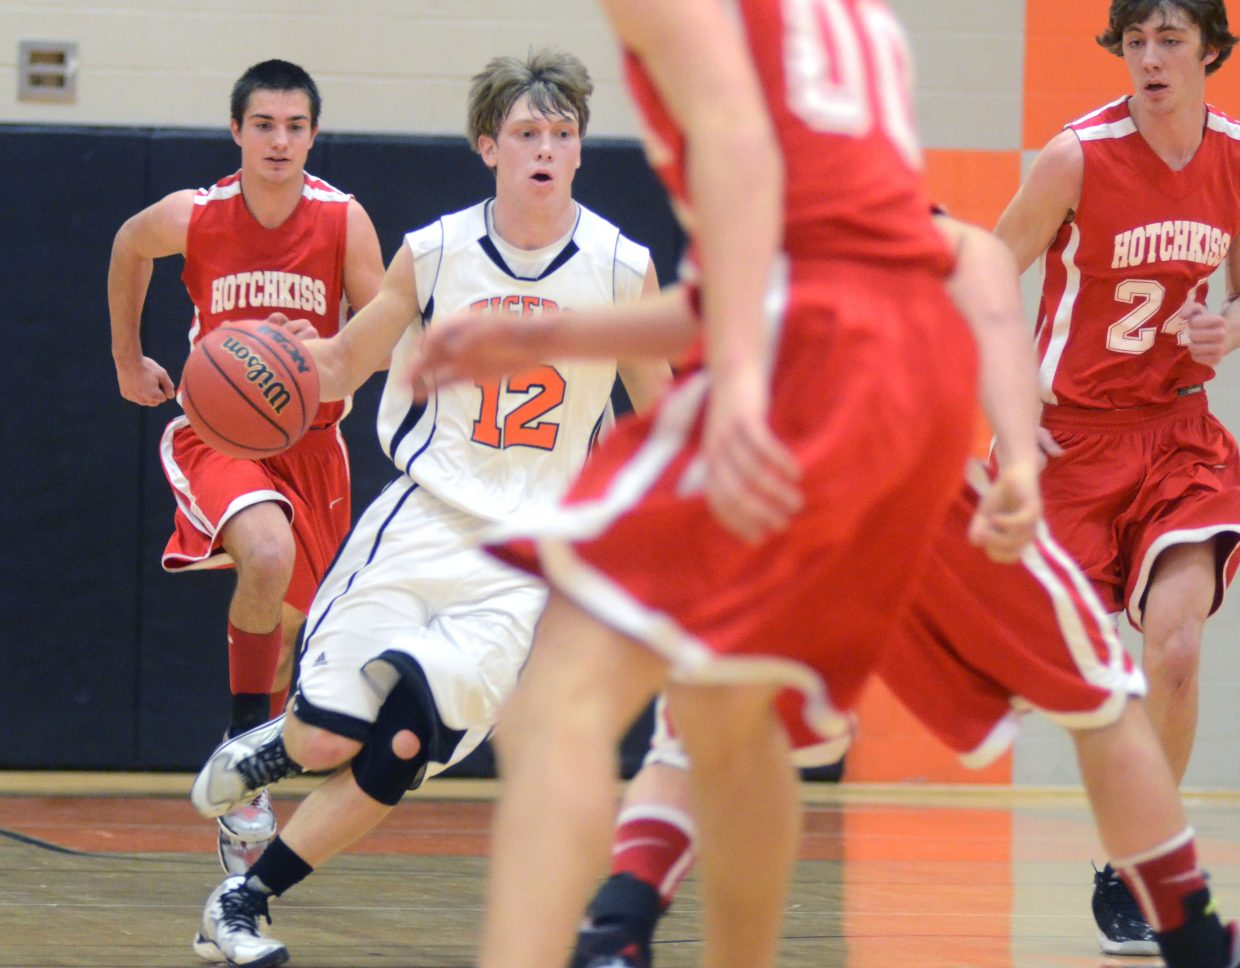 Dan Engle, 12, leads a fast break in the second quarter of Hayden's 59-42 loss to Hotchkiss on Friday night.